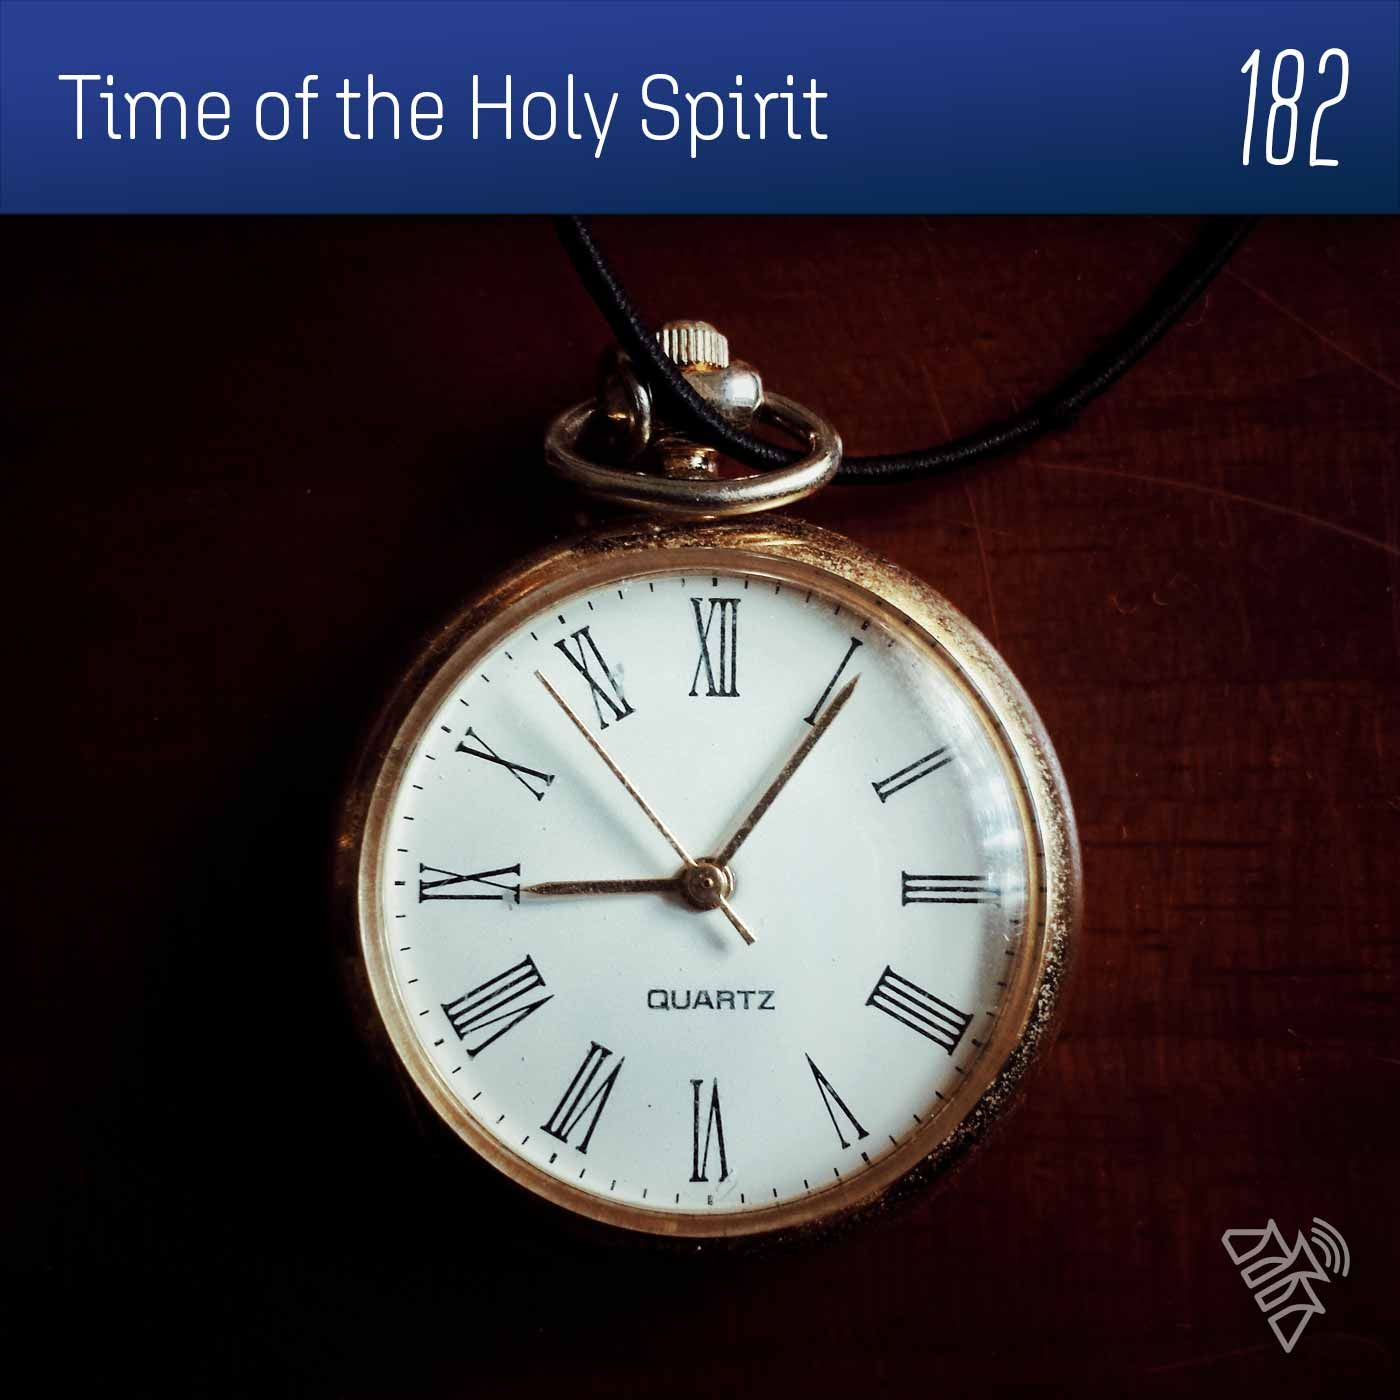 Time of the Holy Spirit